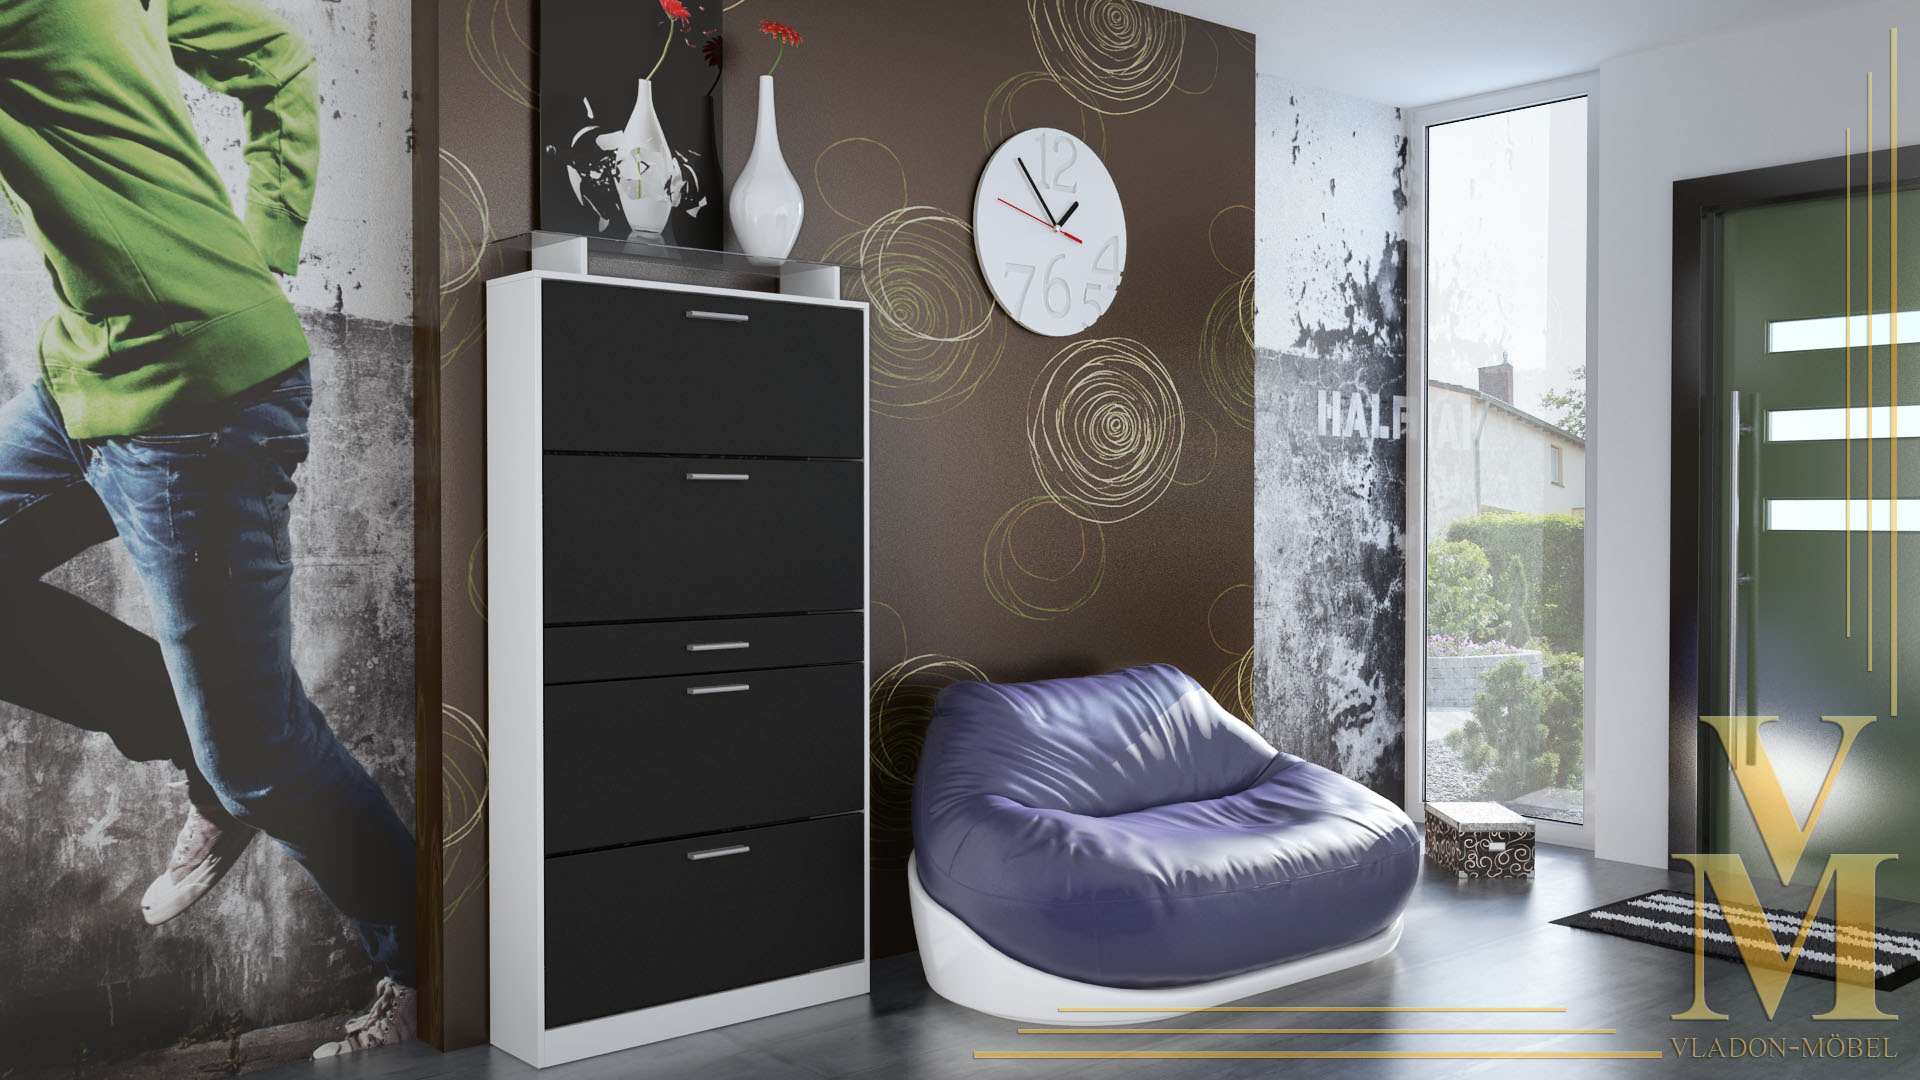 schuhschrank schuhkipper dielen flur schrank rima wei hochglanz naturt ne ebay. Black Bedroom Furniture Sets. Home Design Ideas